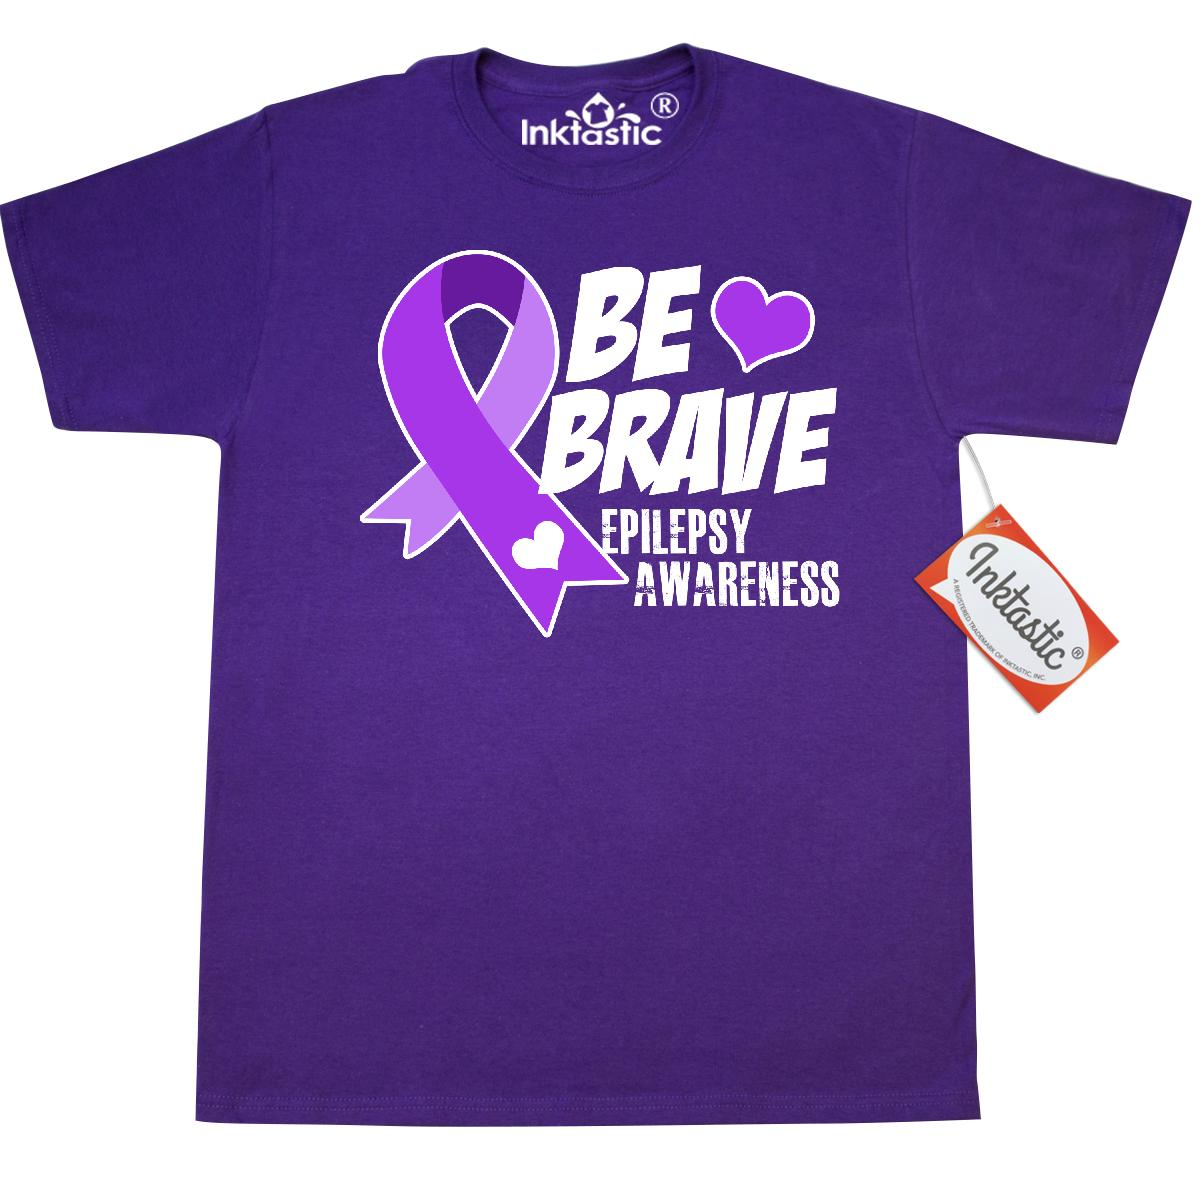 Inktastic Be Brave Support And Raise Awareness Of Epilepsy T-Shirt Purple Up Ribbon Mens Adult Clothing Apparel Tees T-shirts